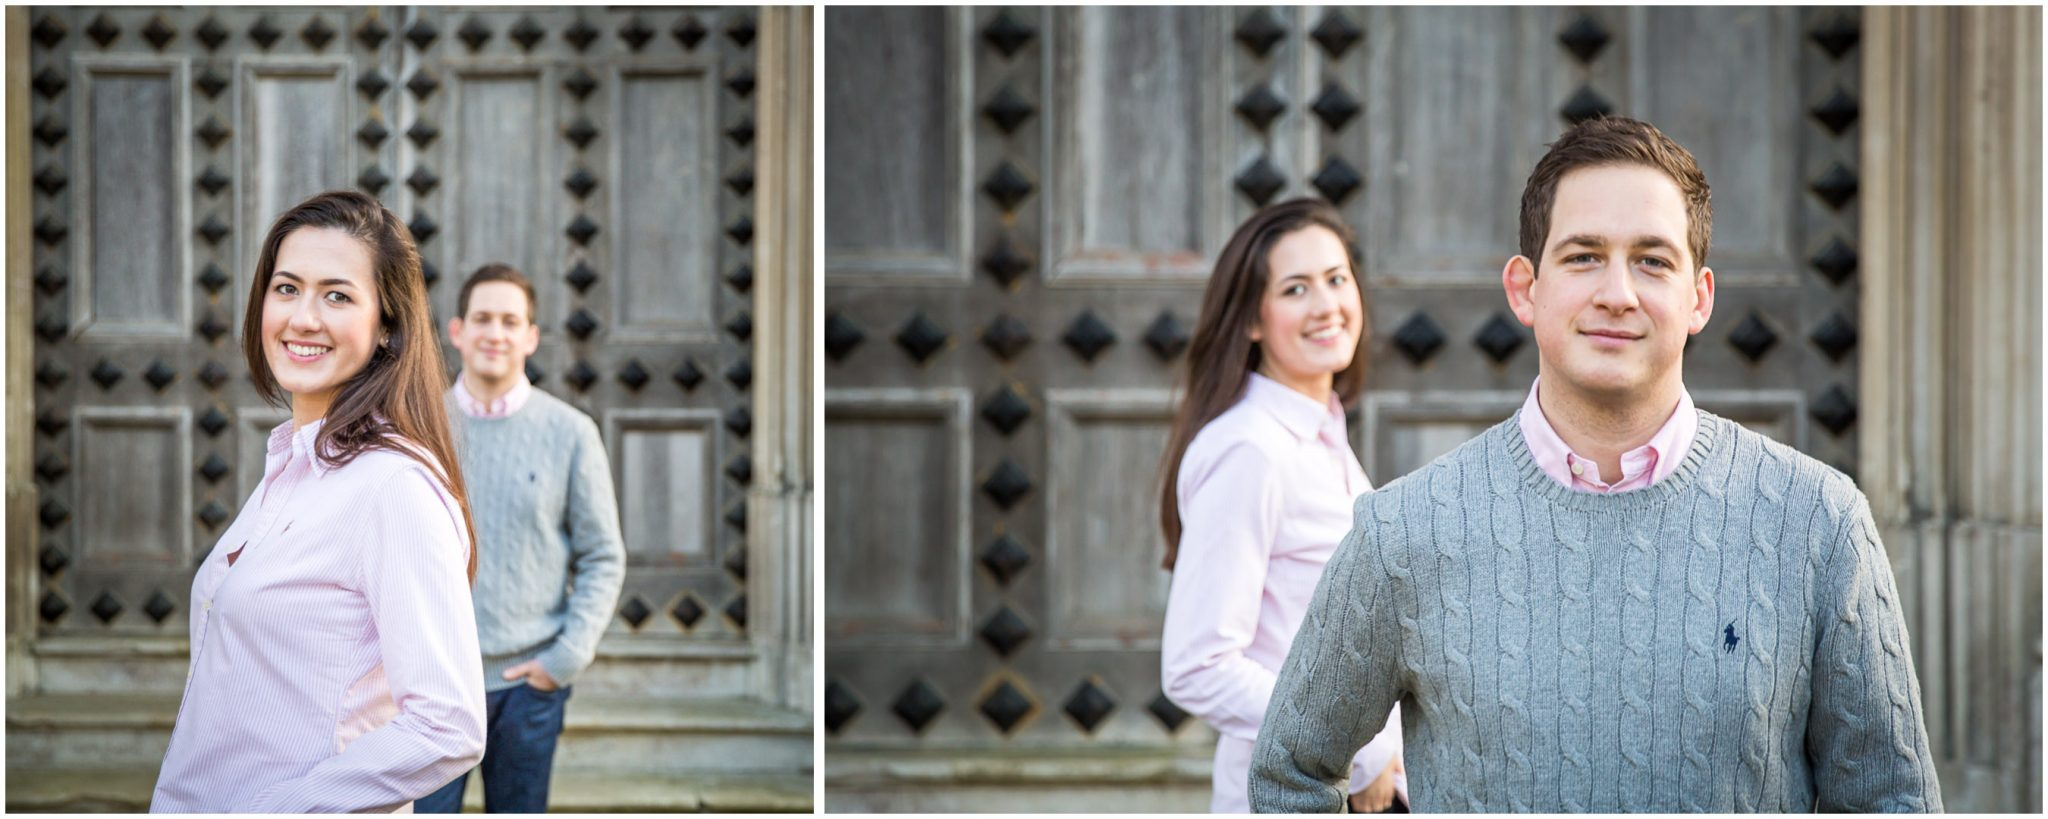 Bride and groom portraits at Highcliffe Castle New Forest